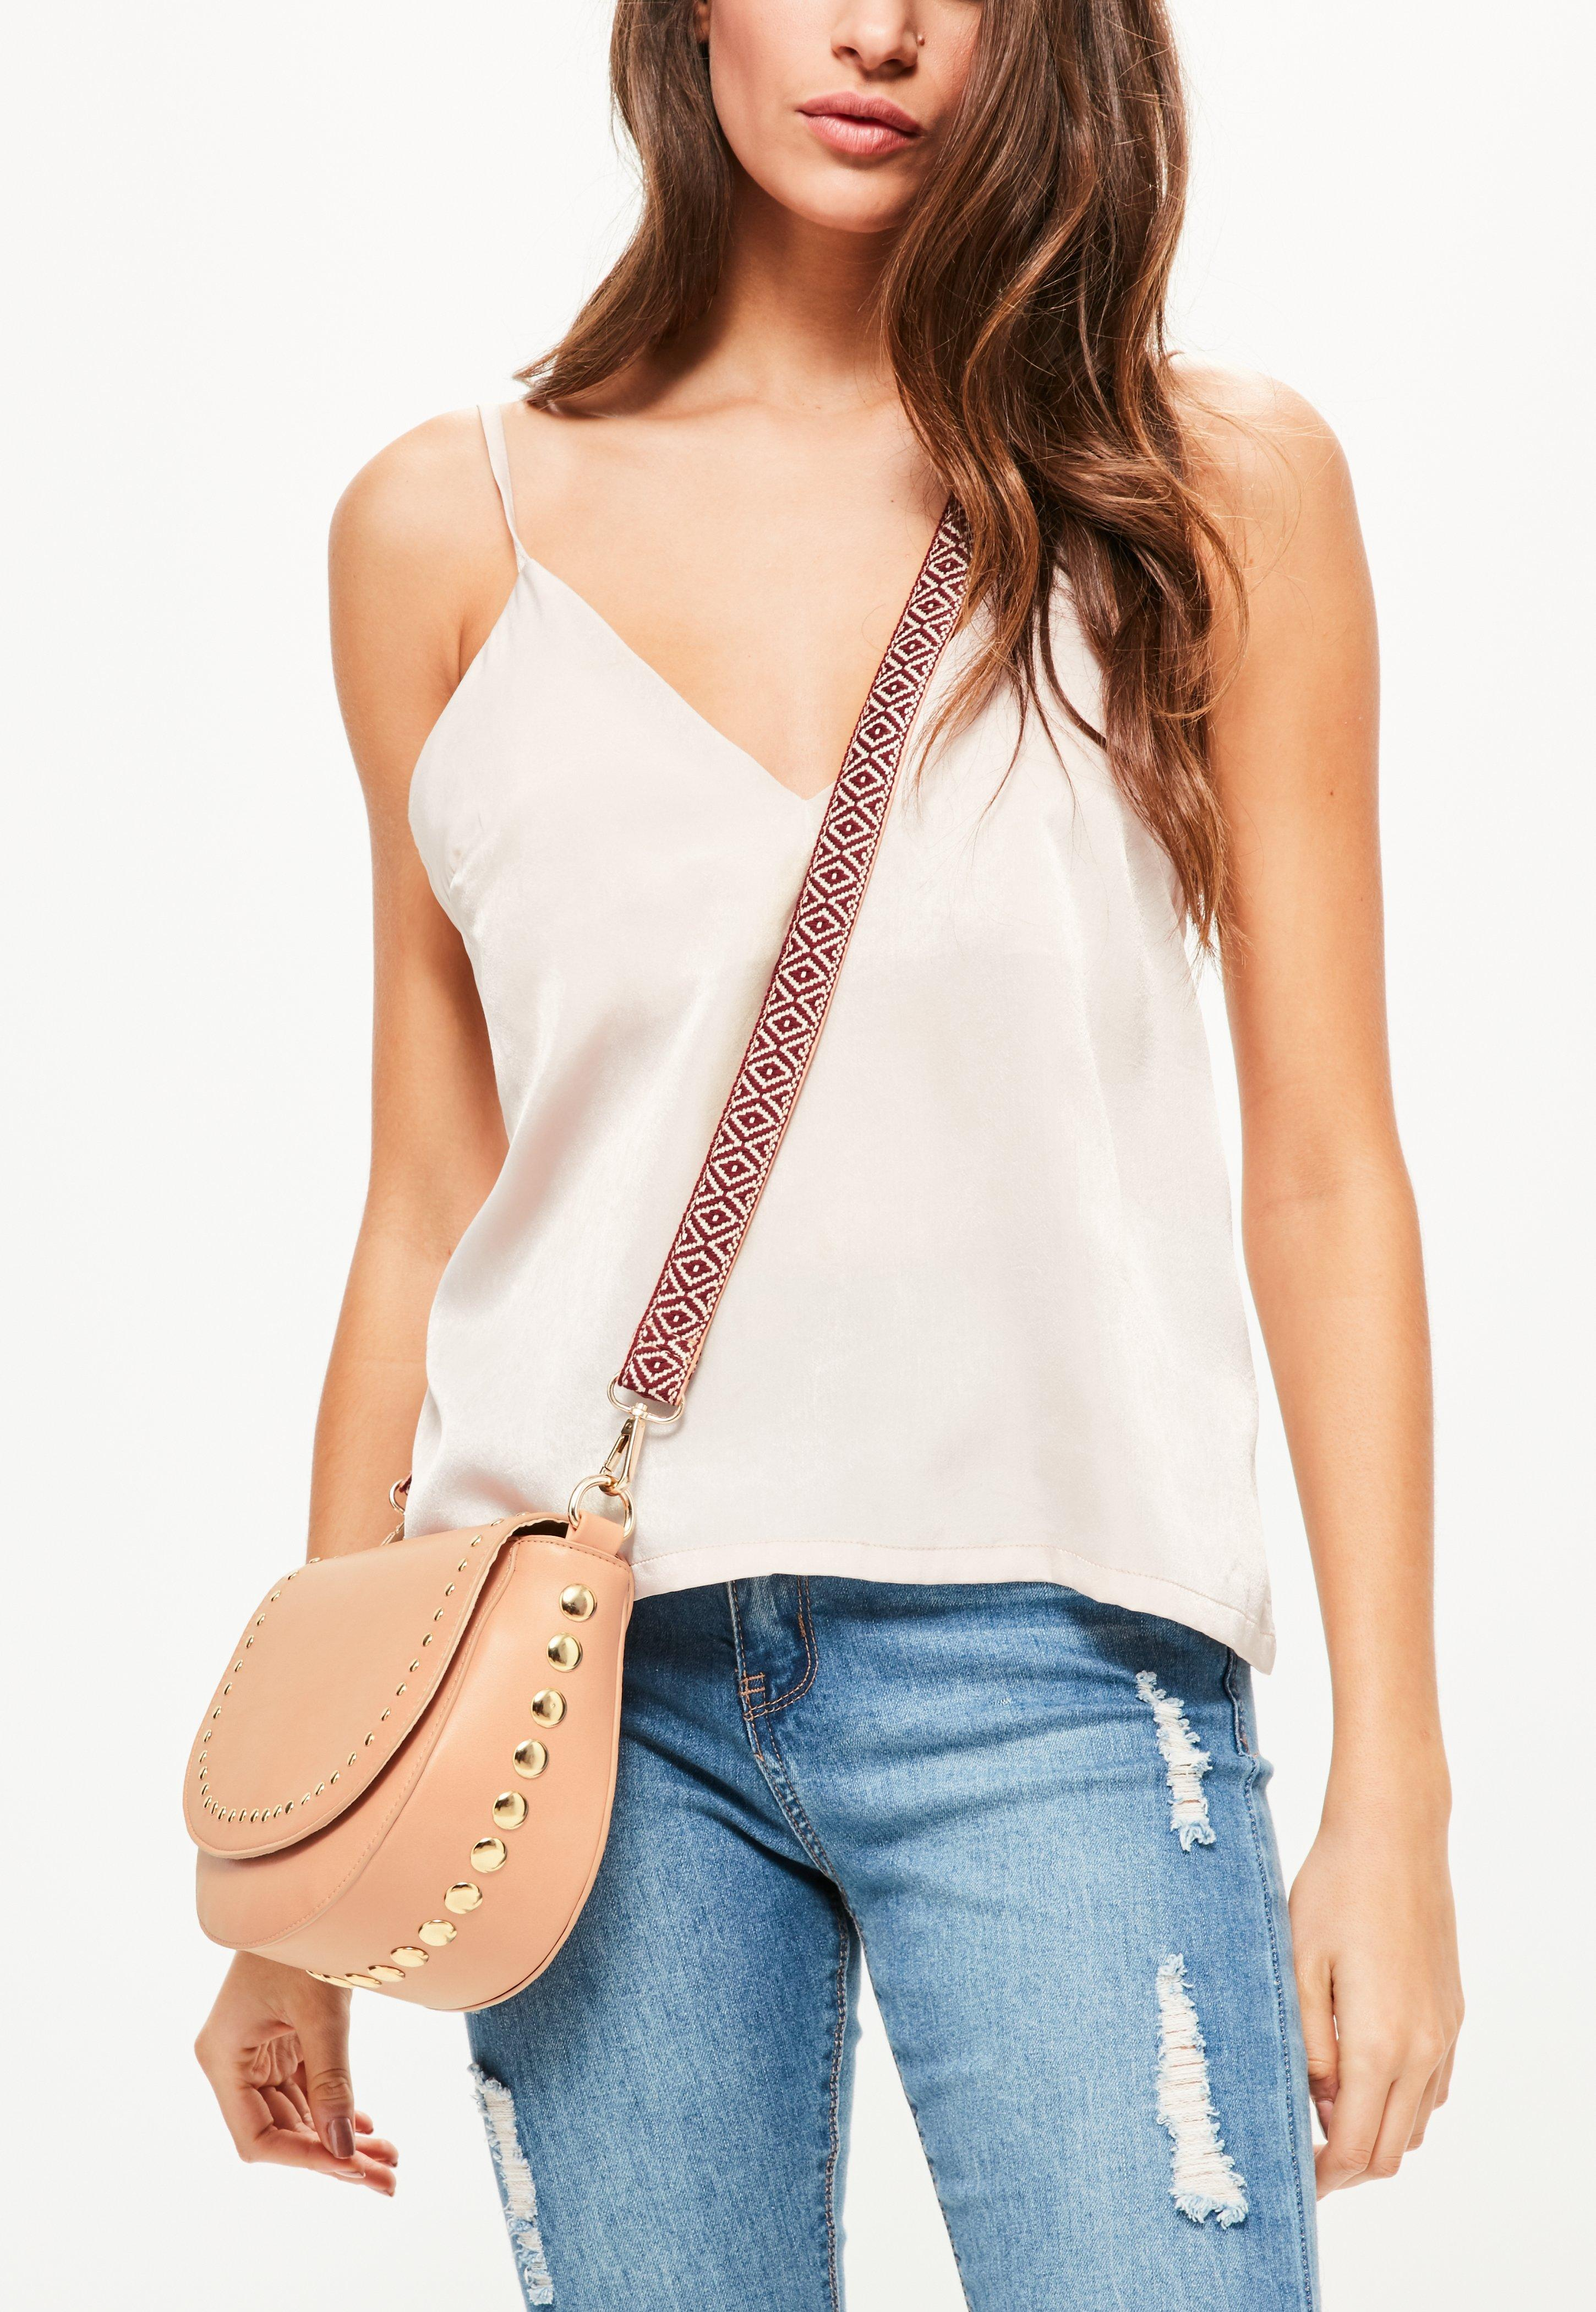 587889c63b Missguided Nude Studded Guitar Strap Cross Body Bag at £10